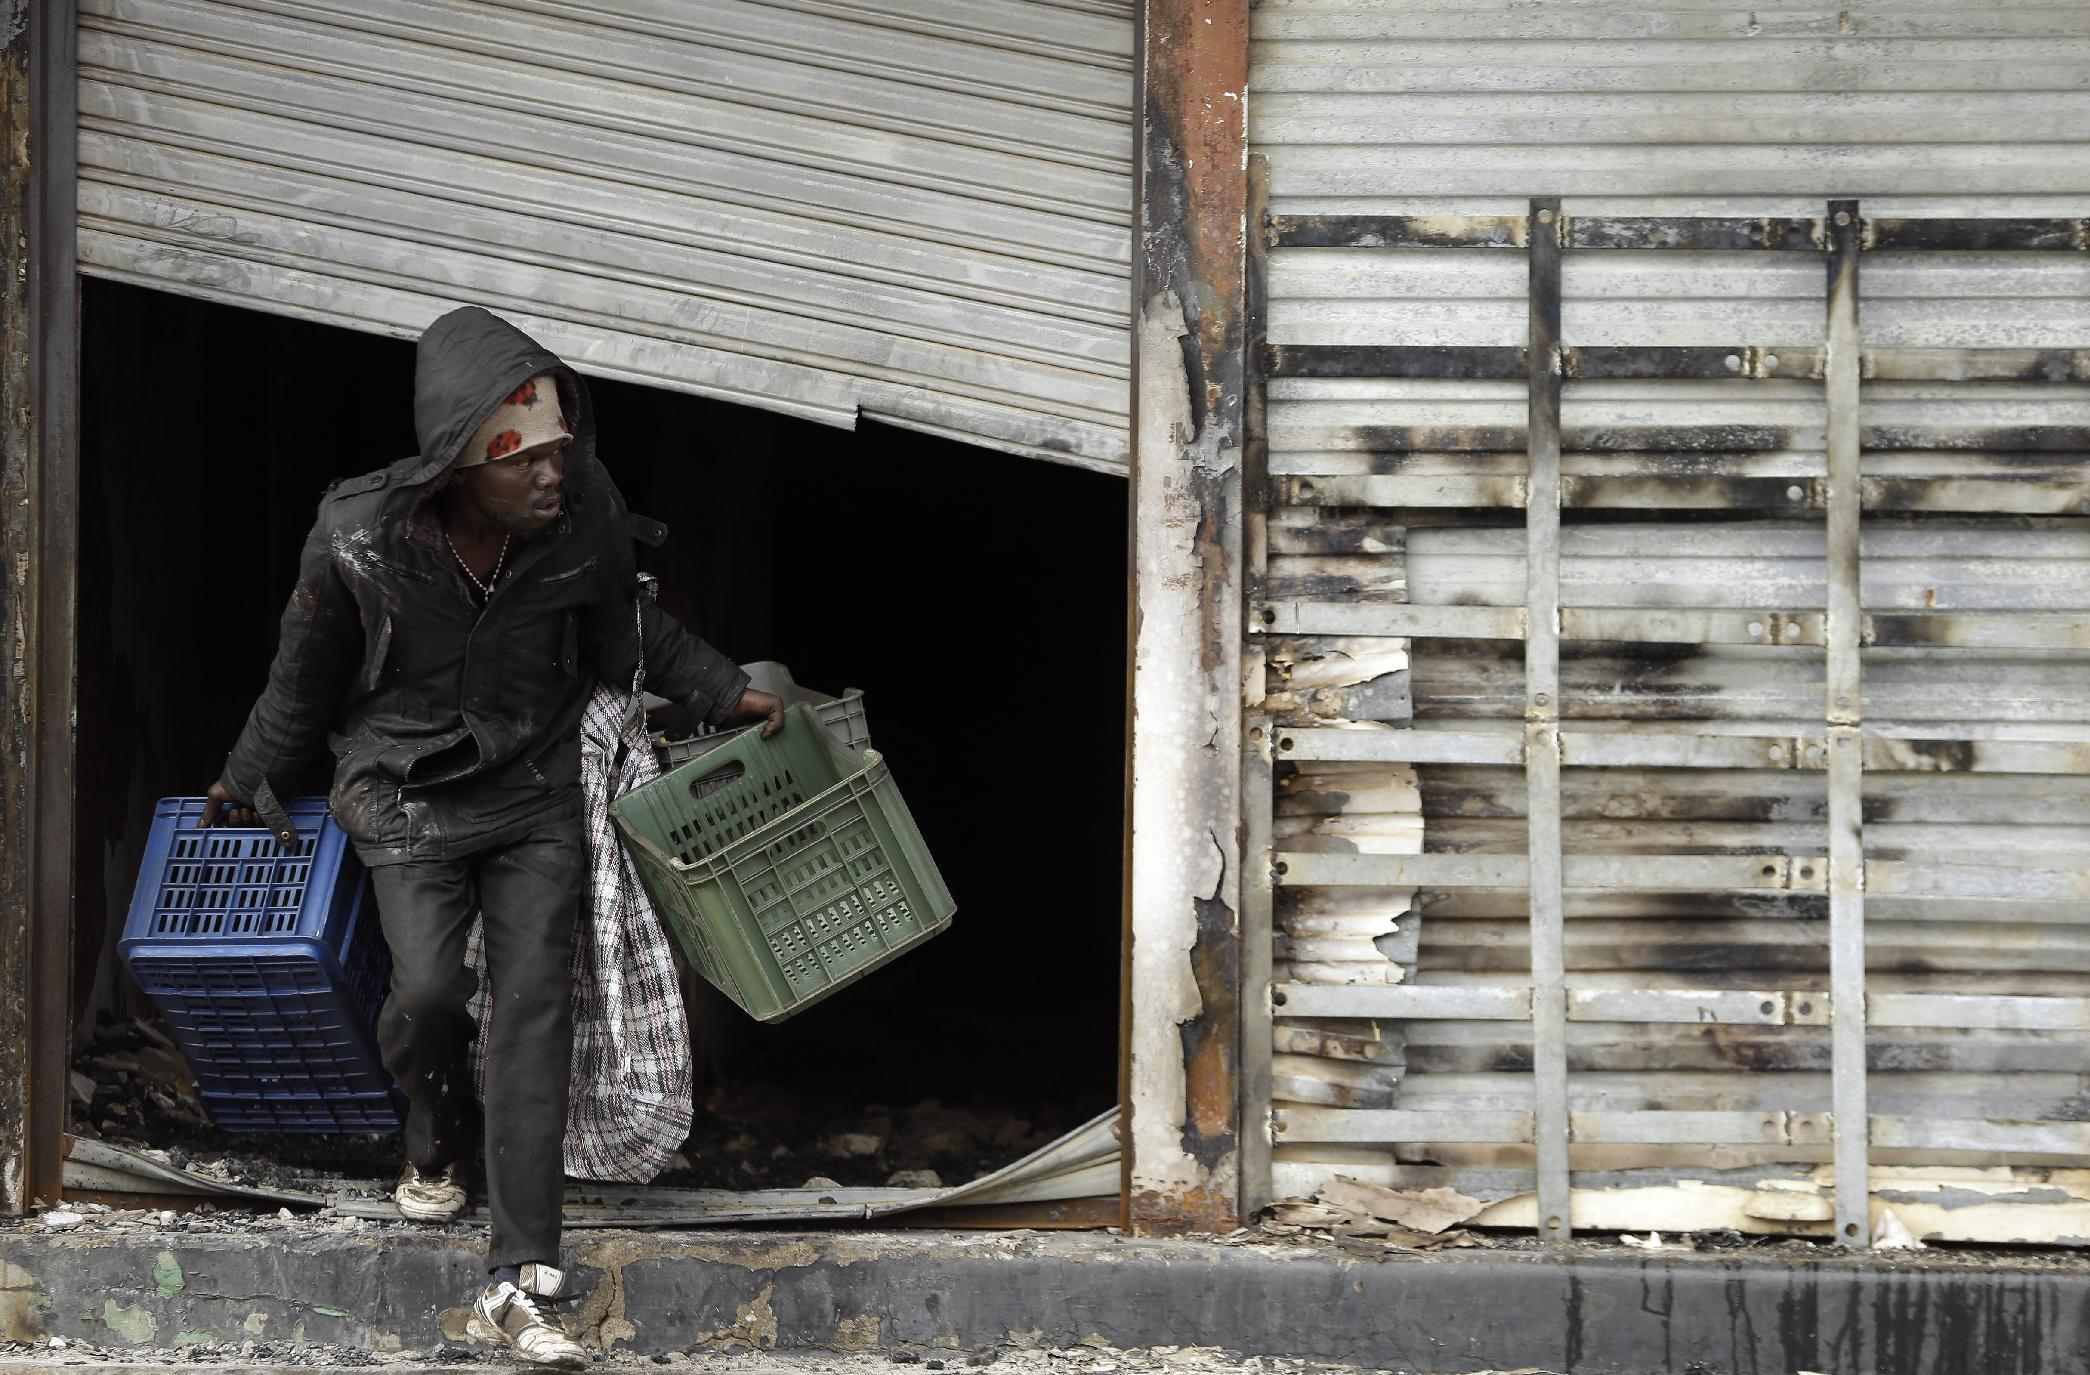 Immigrants describe threats in South Africa